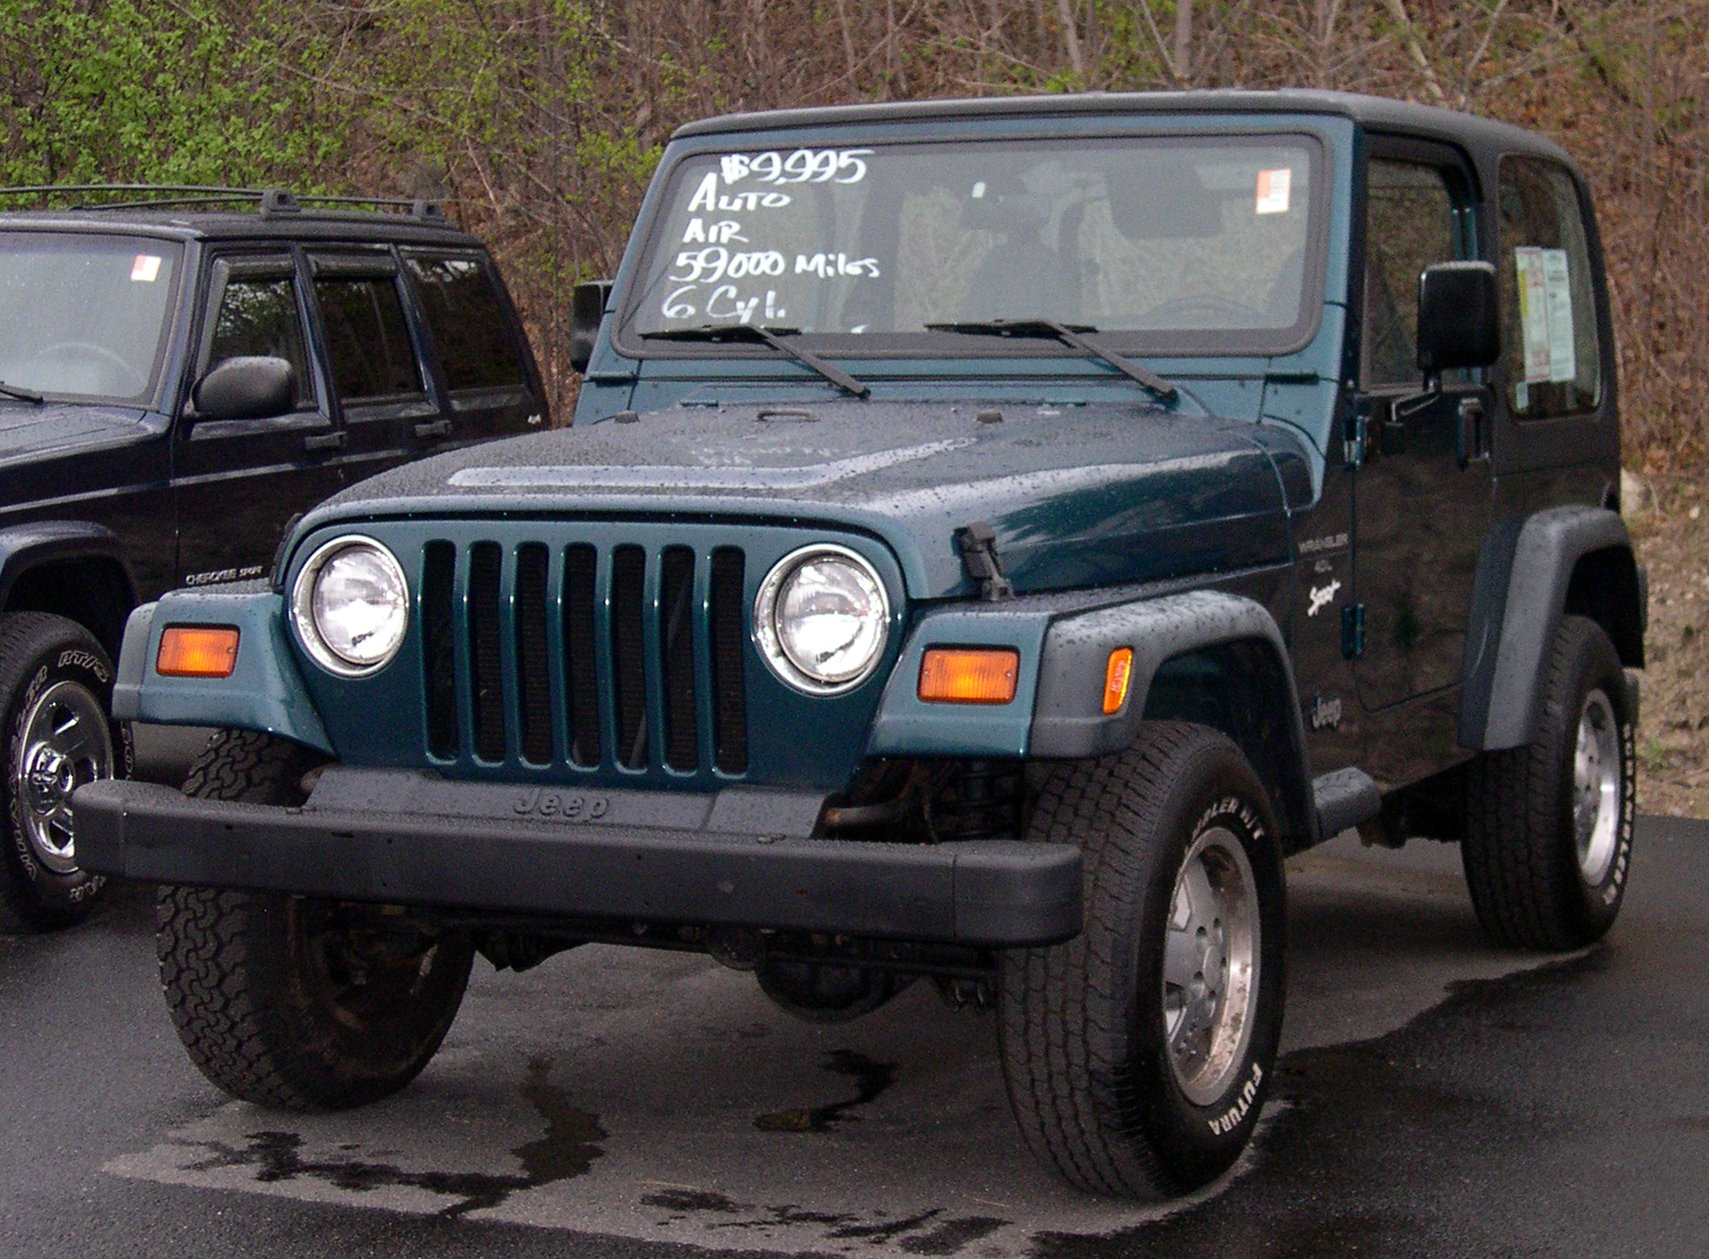 1997 Jeep Wrangler ii (tj) – pictures, information and